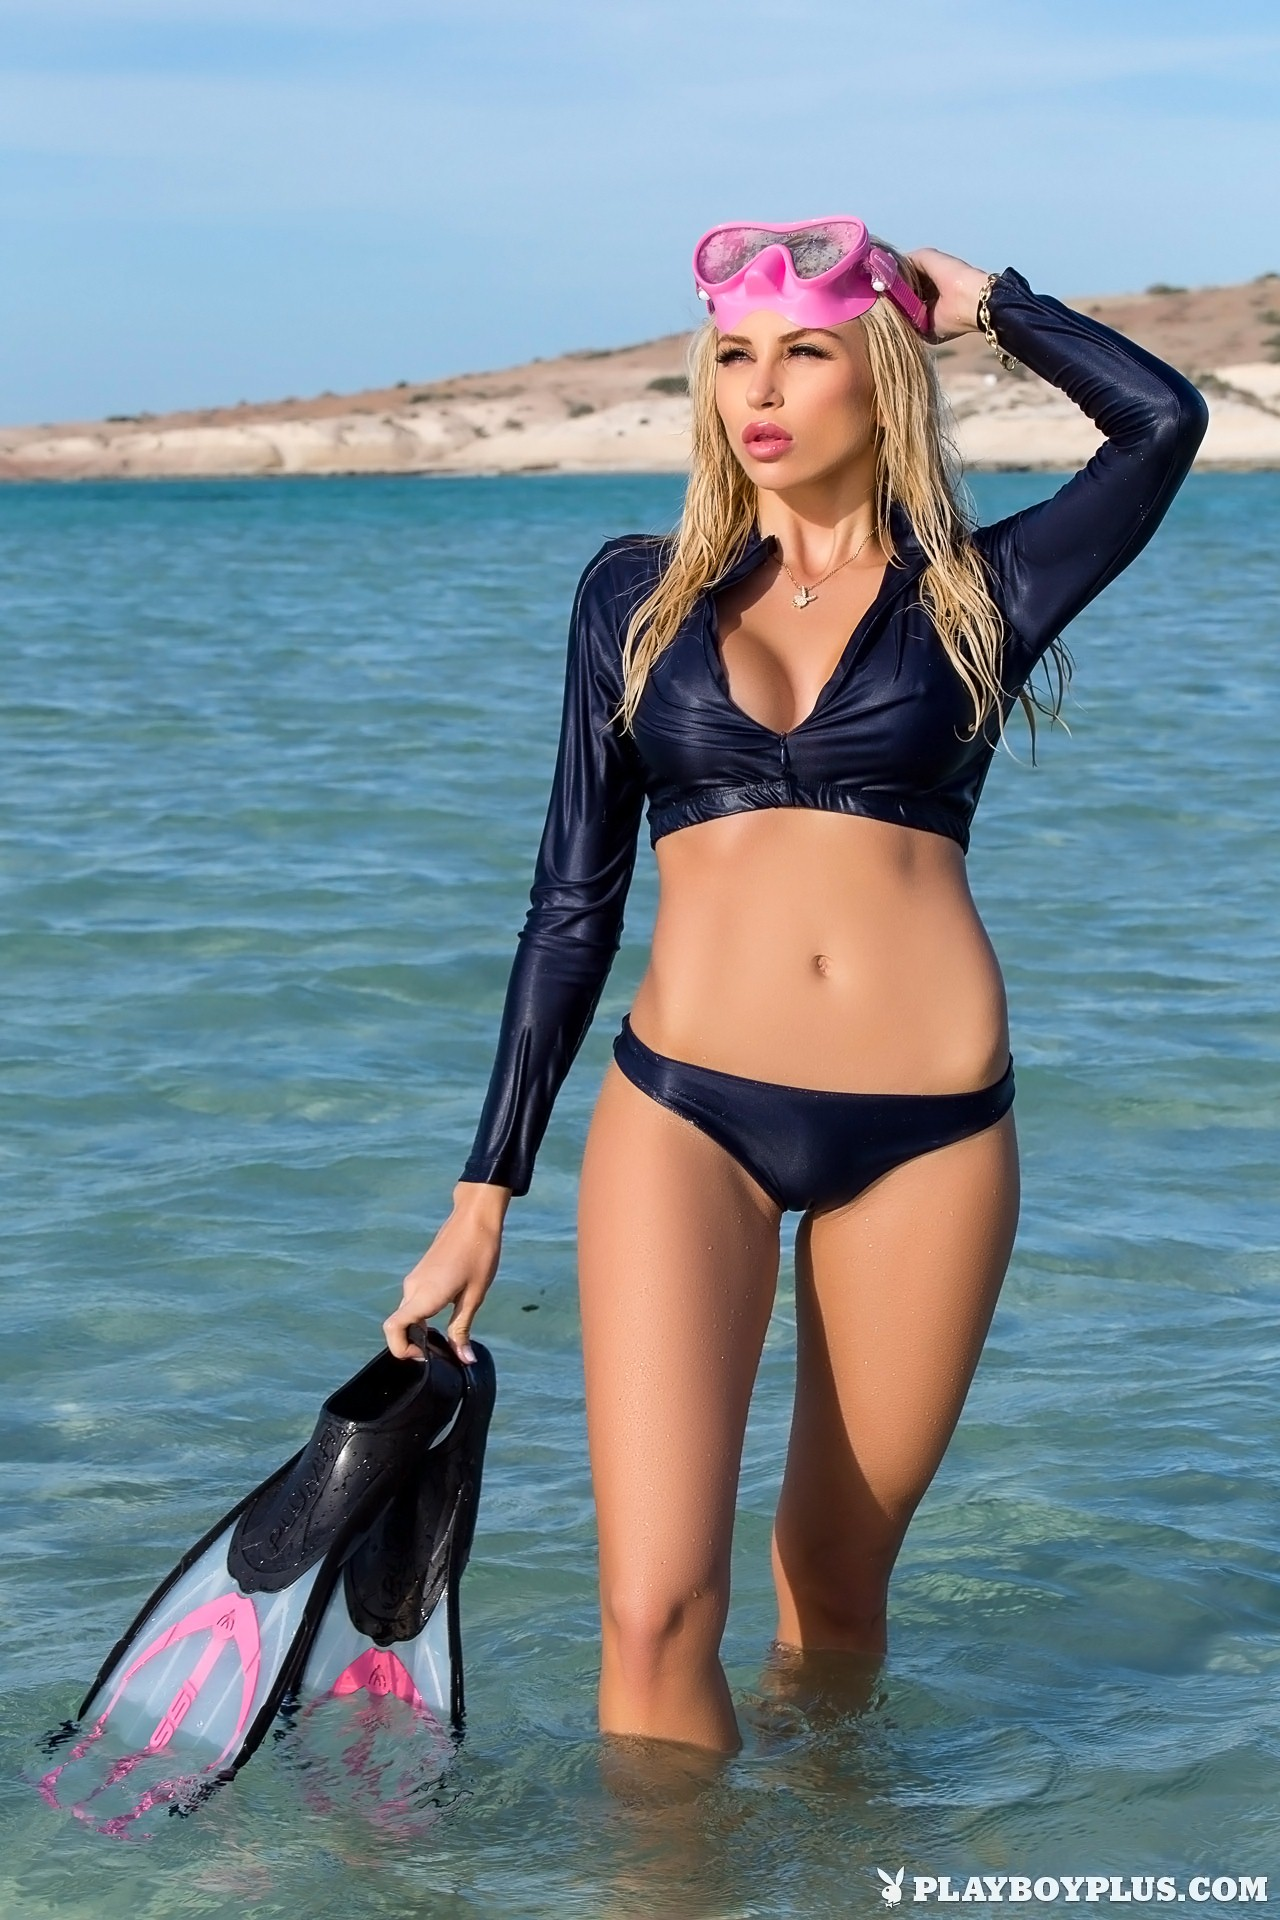 Khloe Terae Playboy Cybergirl of the Year 2015 | Daily Girls @ Female Update